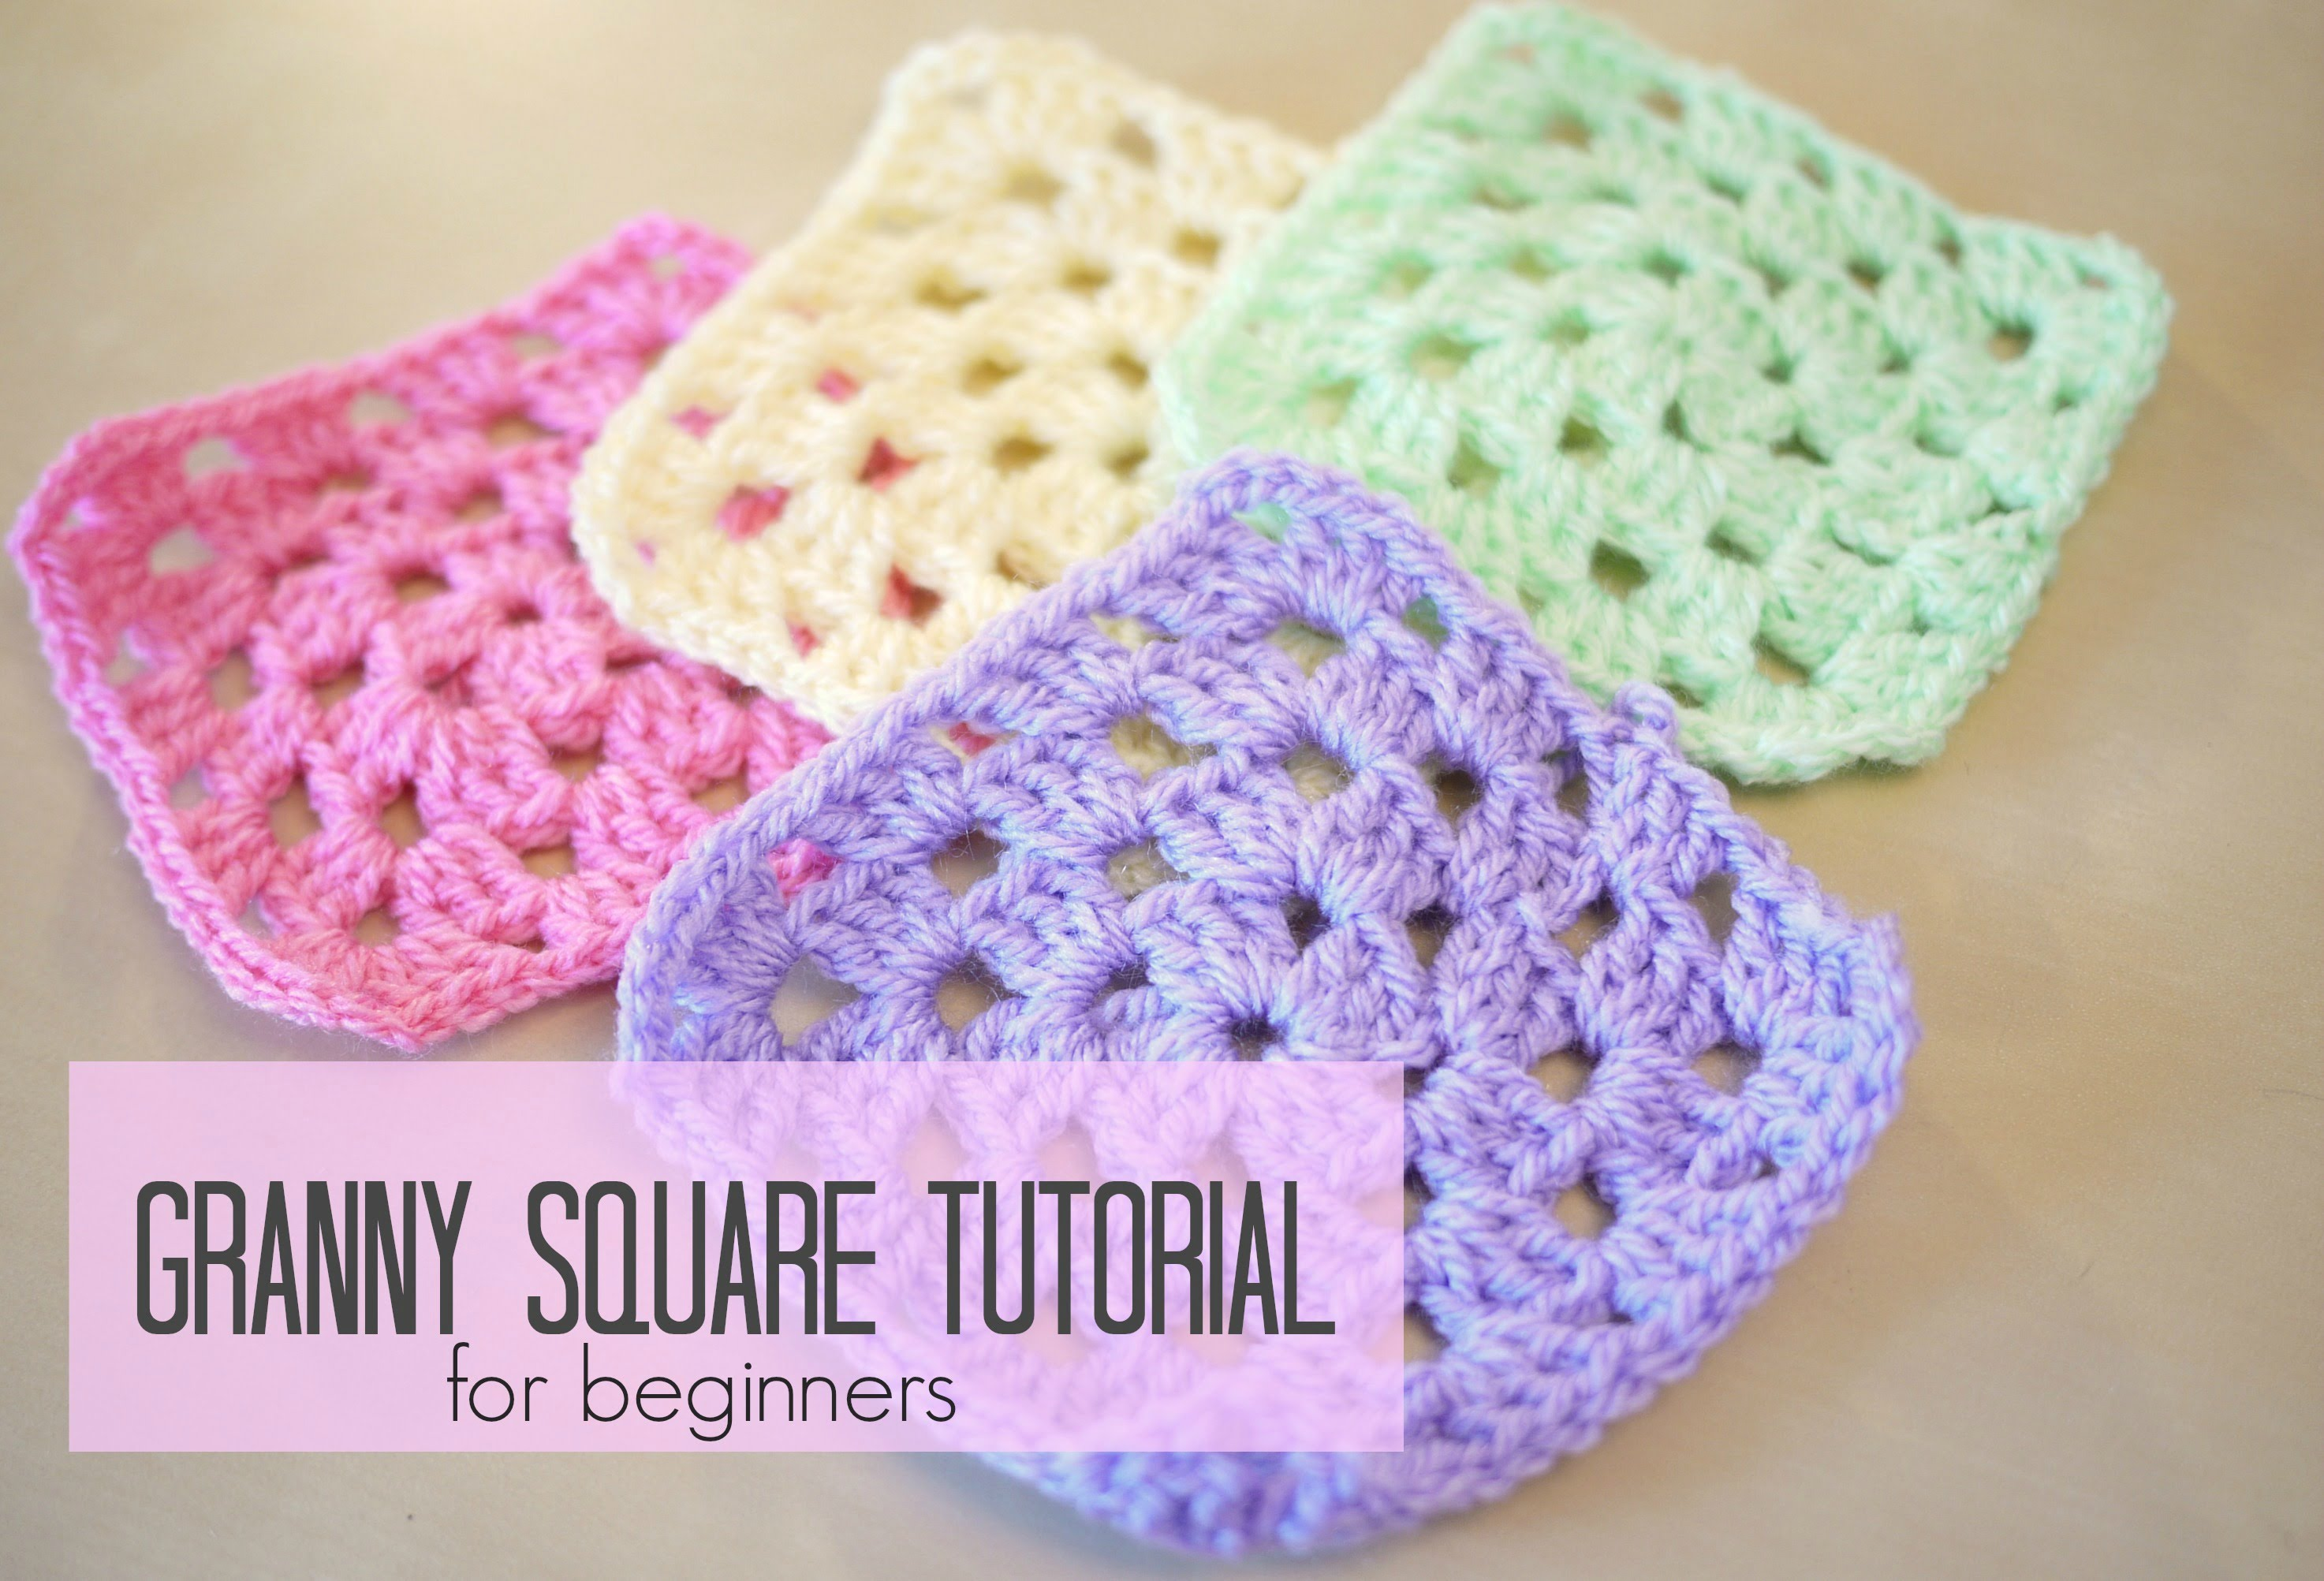 Crochet Stitches For Beginners Step By Step : ... ] Granny Square For Beginners Step-By-Step - Knit And Crochet Daily